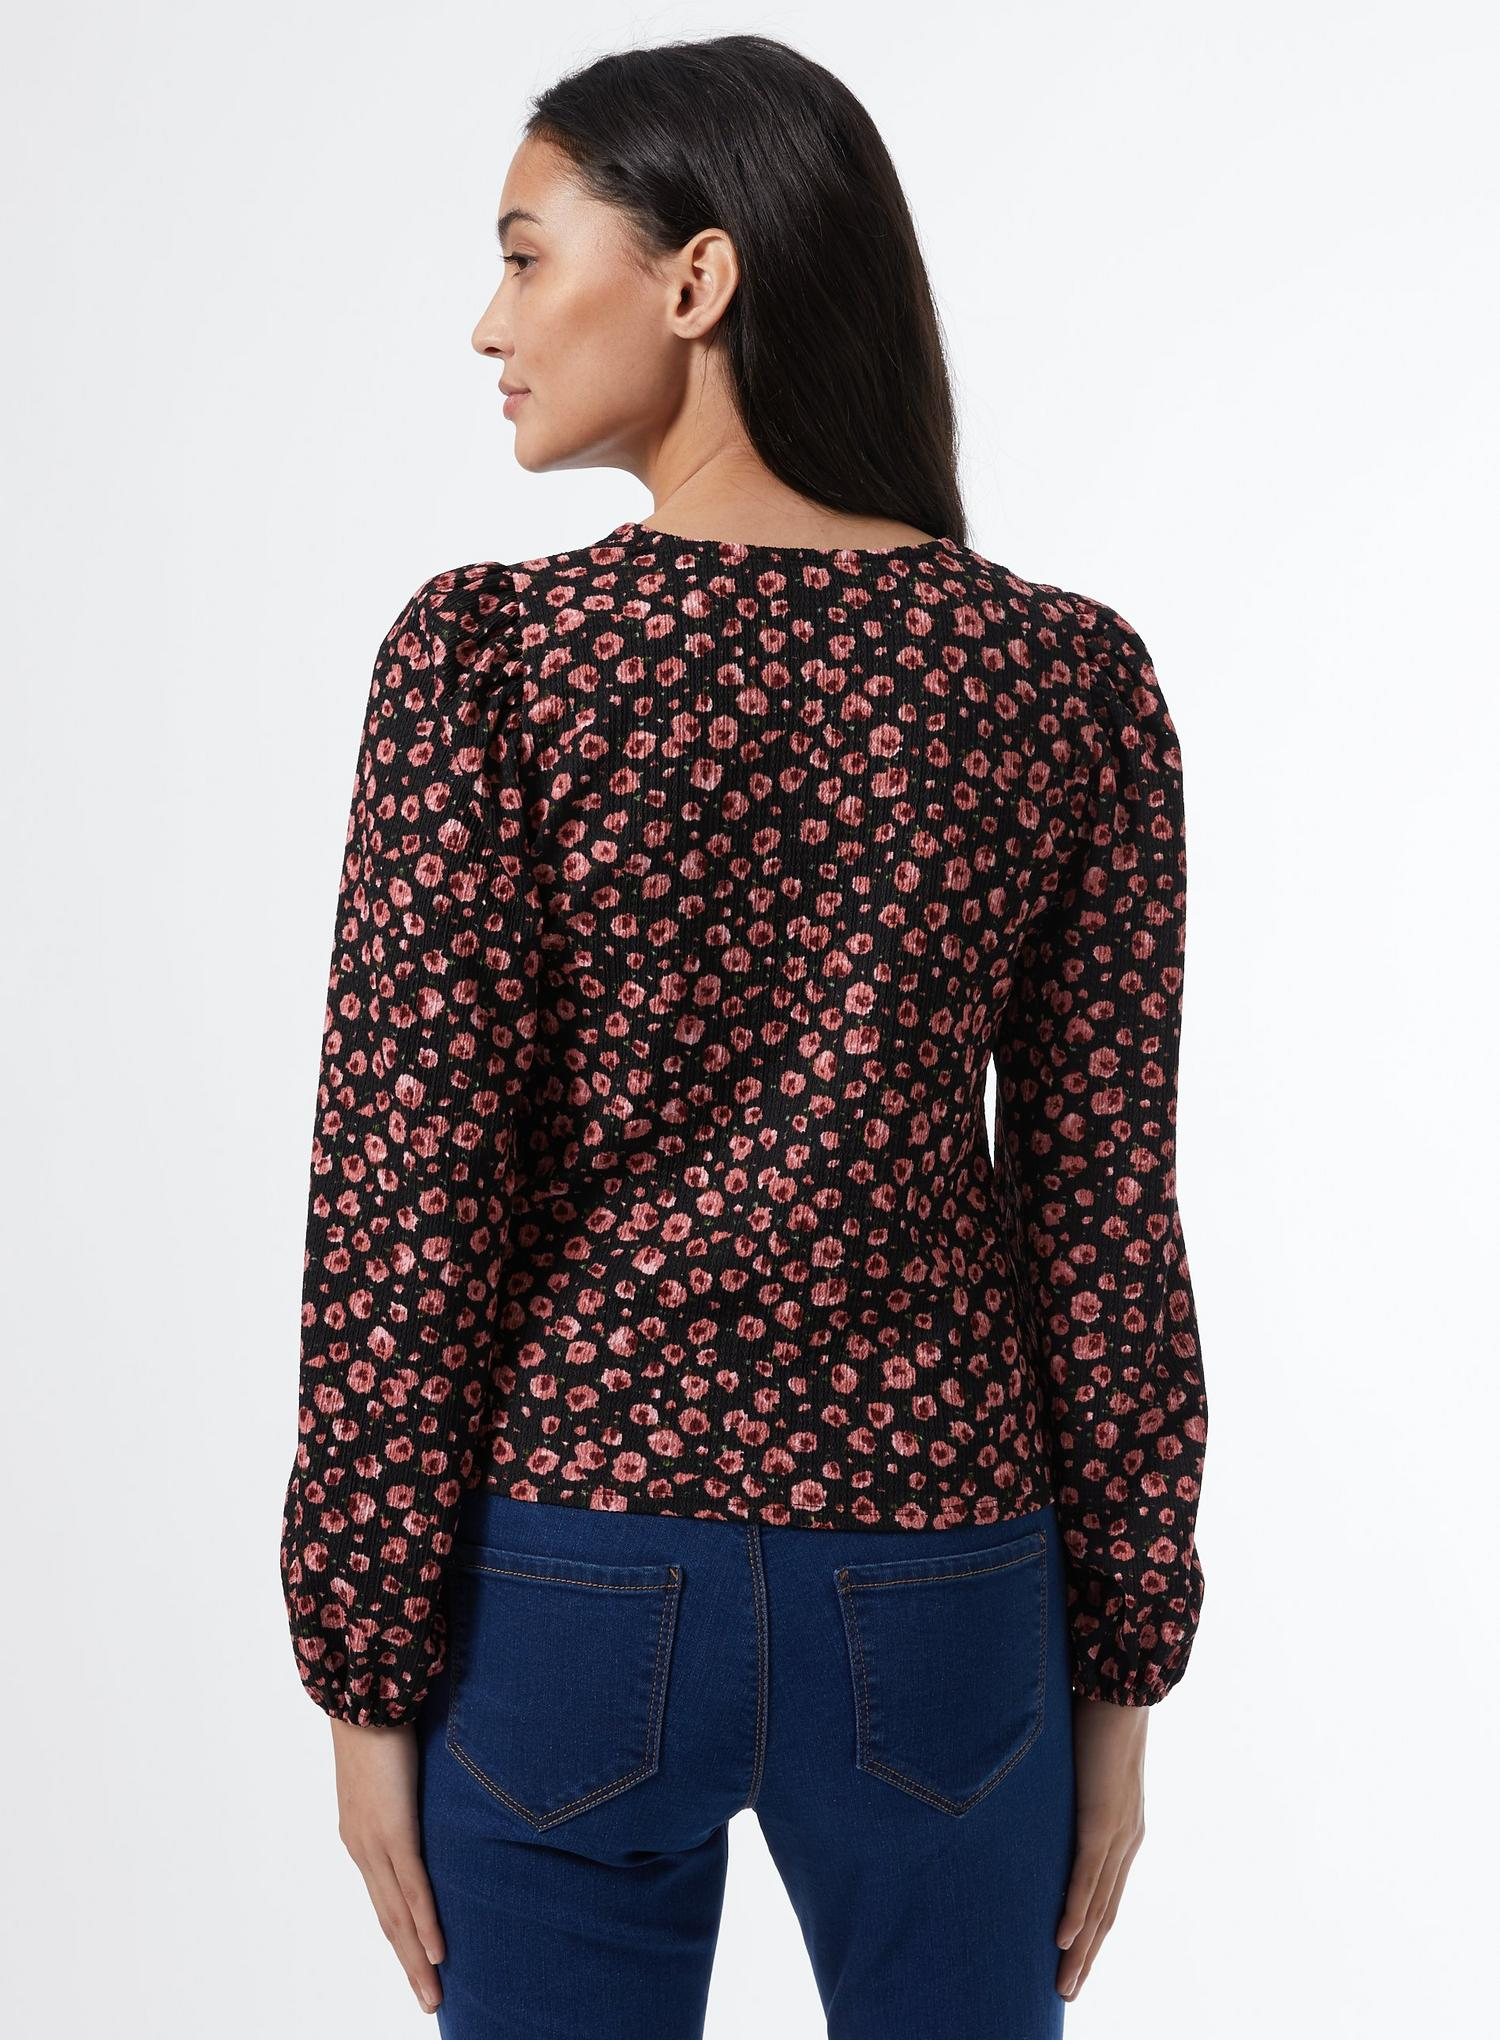 105 Petite Black Floral Print Ruched Top image number 3